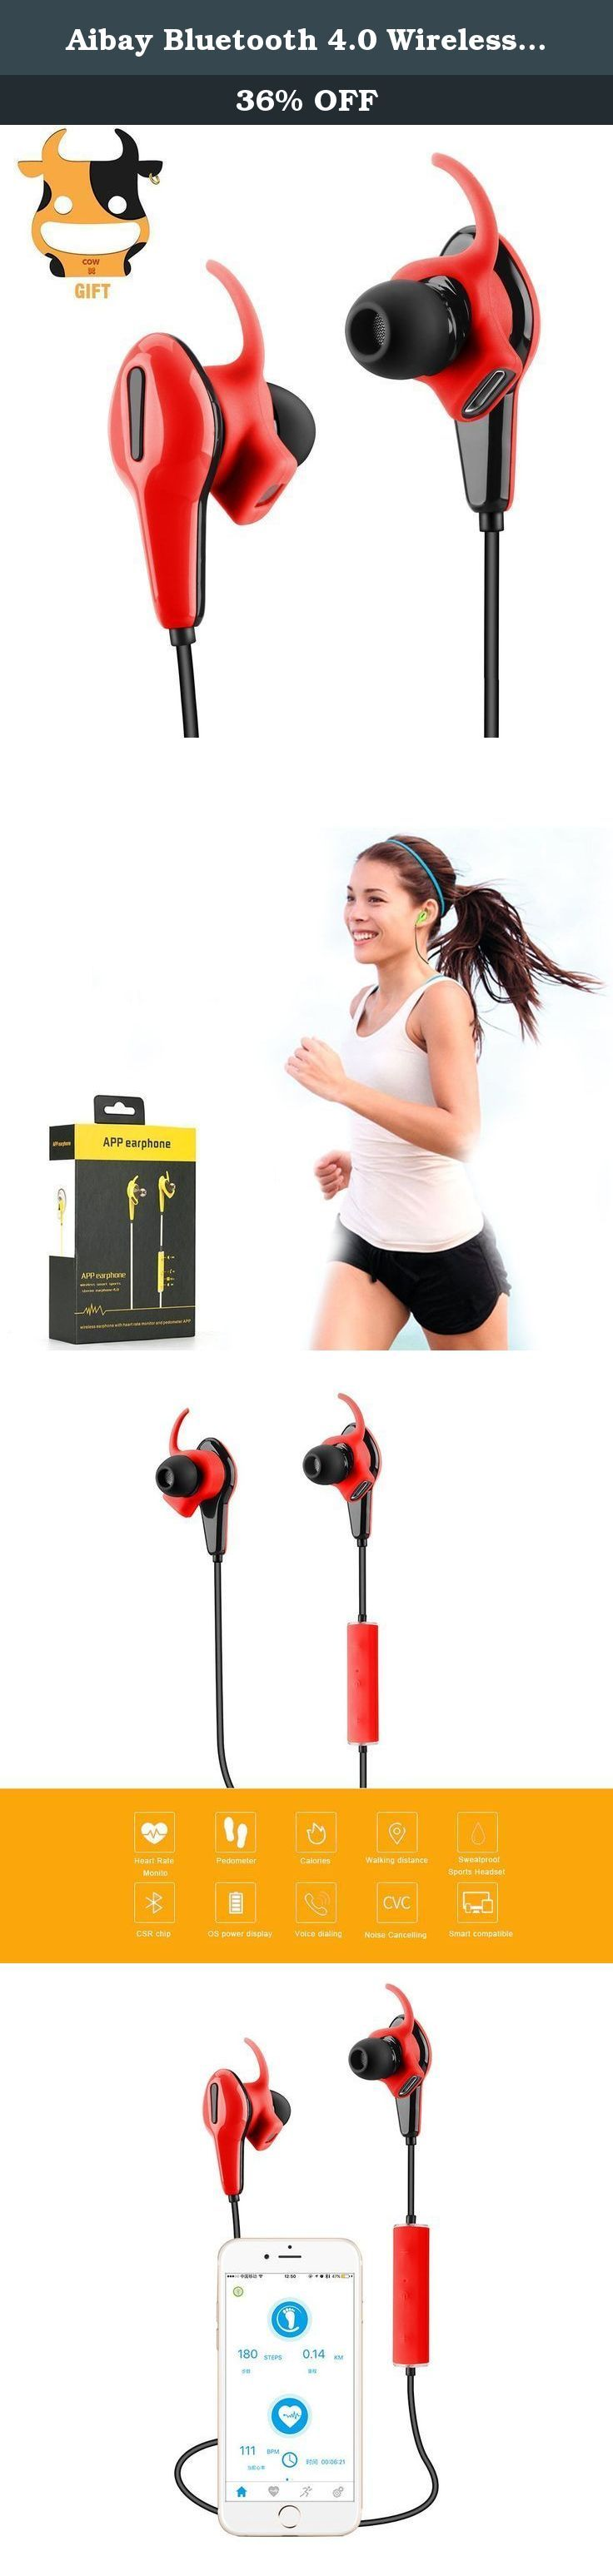 Aibay Bluetooth 4.0 Wireless Headphones with Built-In Heart Rate Monitor and Pedometer for Gym,Sporting Earbuds(Red). Specifications: Product Name: App Earphone Chip Model: Bluetooth Drive Unit: ∅8MM Speaker Impedance: 16Ω ± 0.2% Sensitivity: 92DB ± 2 Distortion: 0.30% Noise Reduction: CVC 6.0 Frequency Response: 20-20k HZ Battery Indicator: Polymer Lithium Battery 85mAh+Protection board Bluetooth Version: Ver4.0 Support Agreement: hfp, hsp, a2dp, avrcp, aptx Other functions: App, Heart…